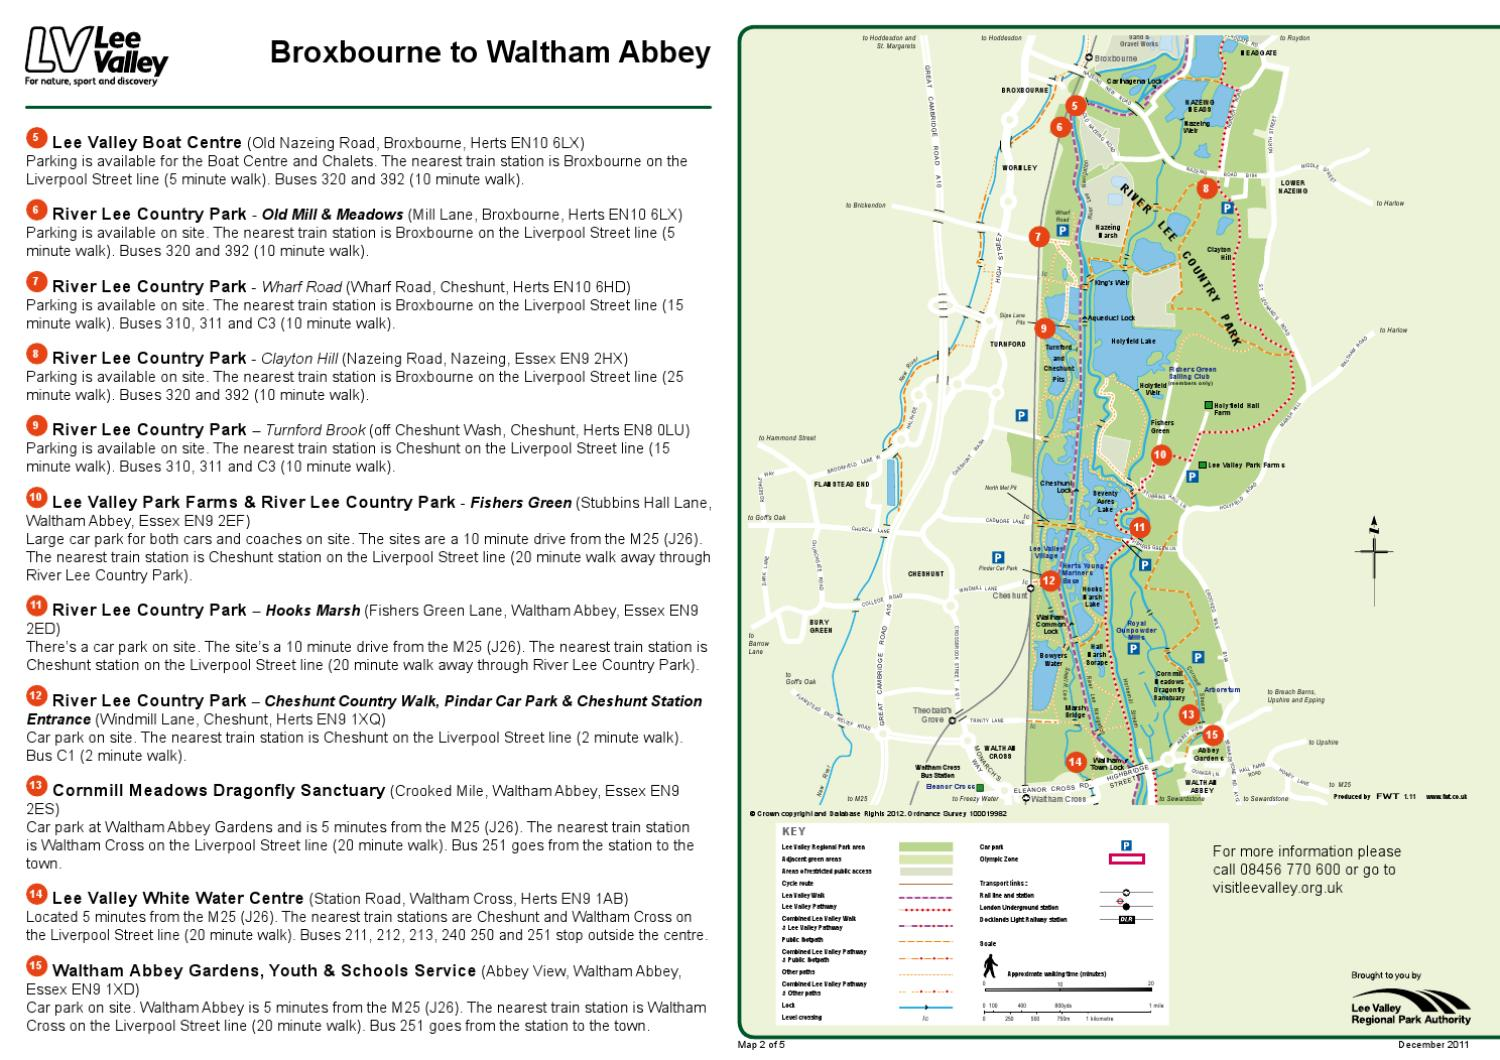 getting here maps broxbourne to waltham abbey by lee